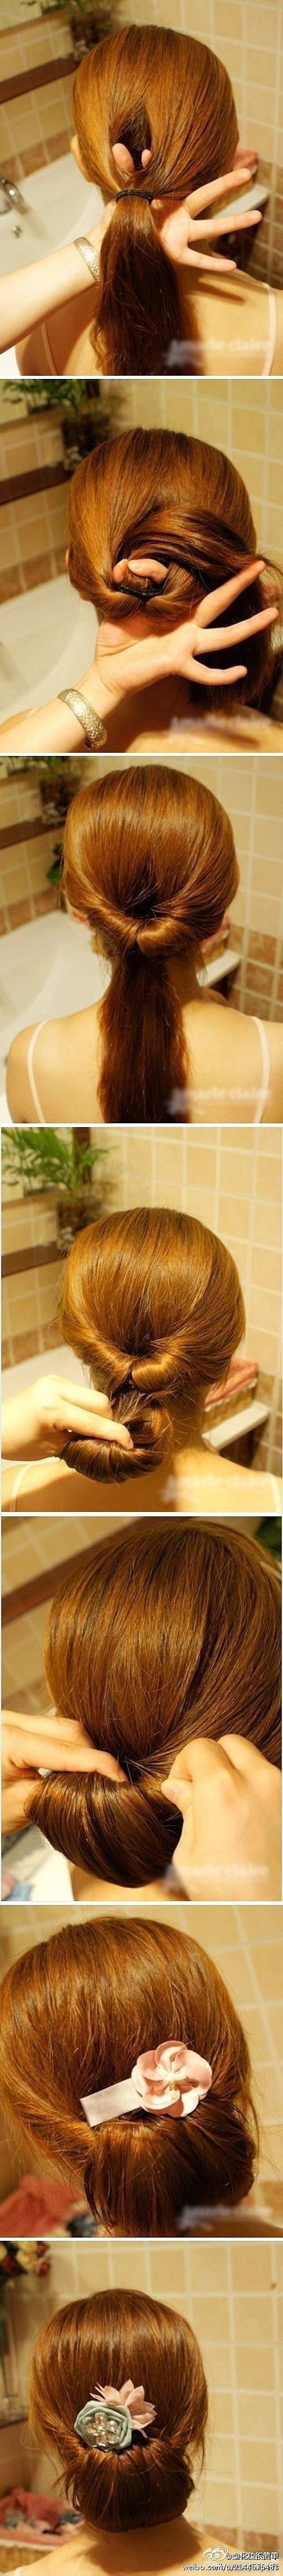 Do this with curly hair with a side part. Pair with pin up make up or clean/fresh make up for a classic look.